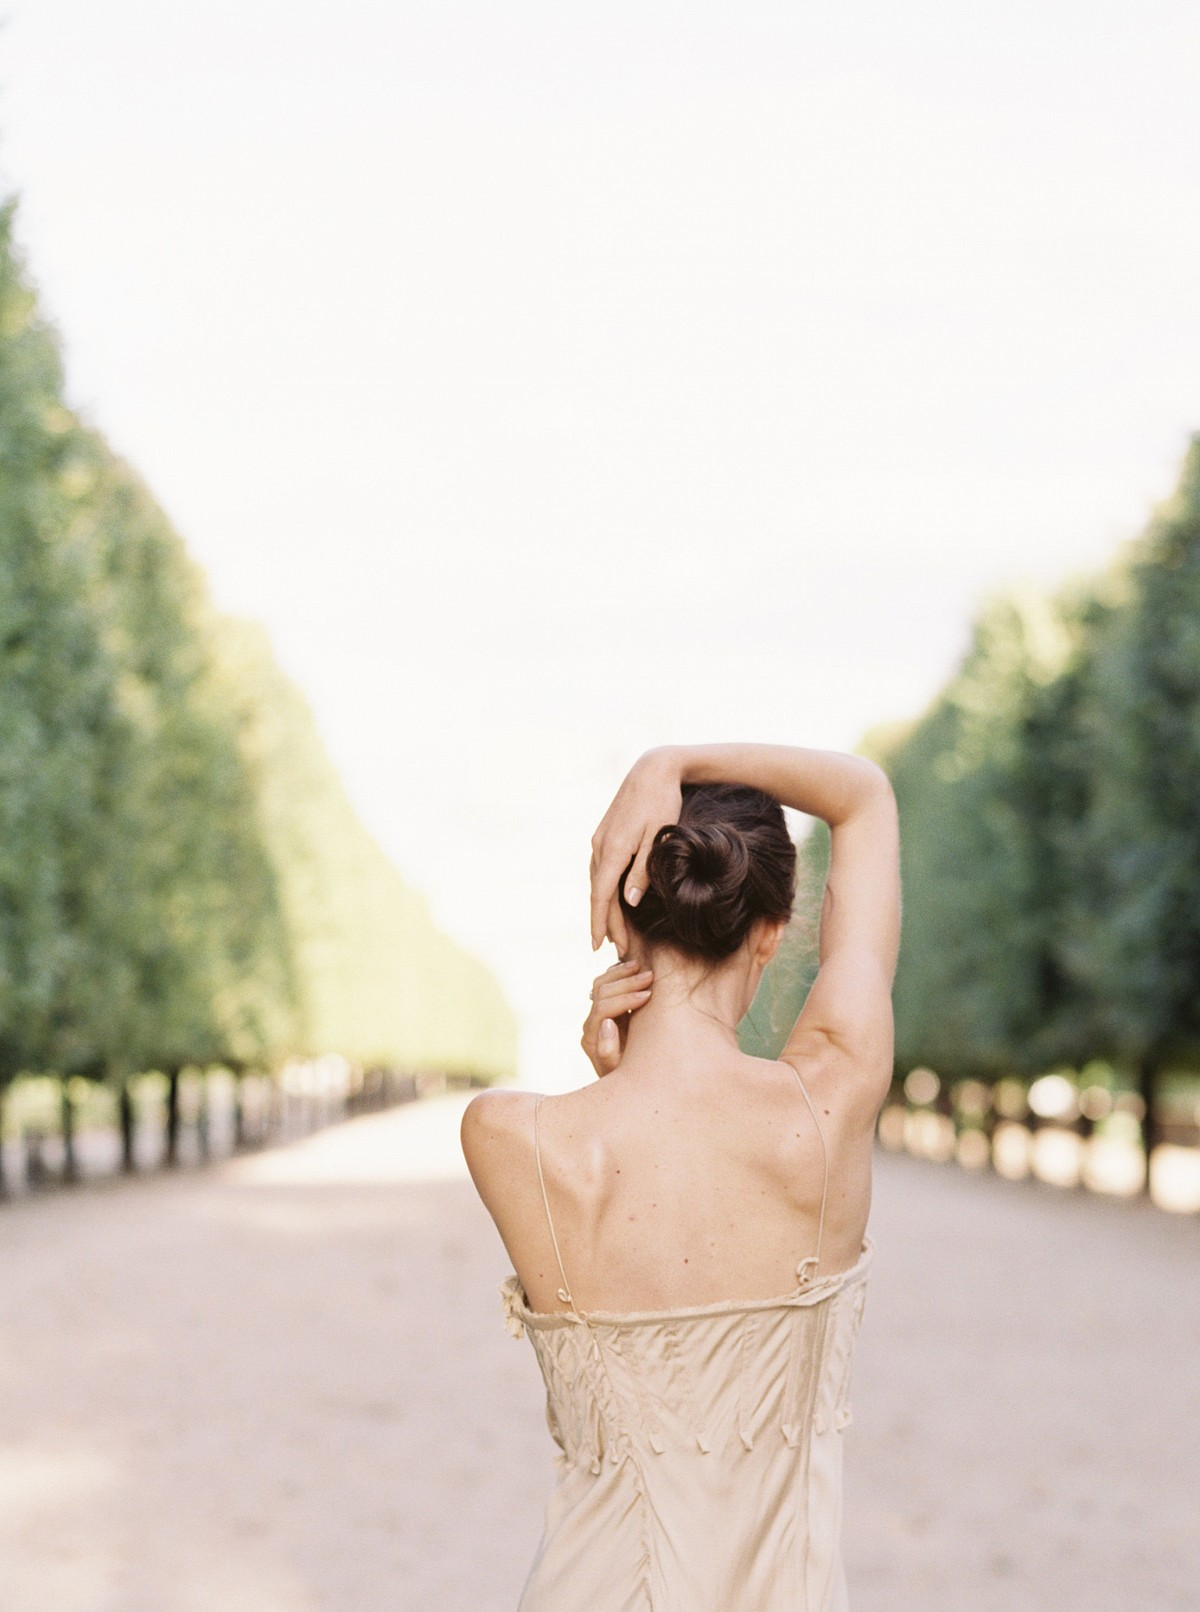 A Simple, yet Stunning Parisian Elopement